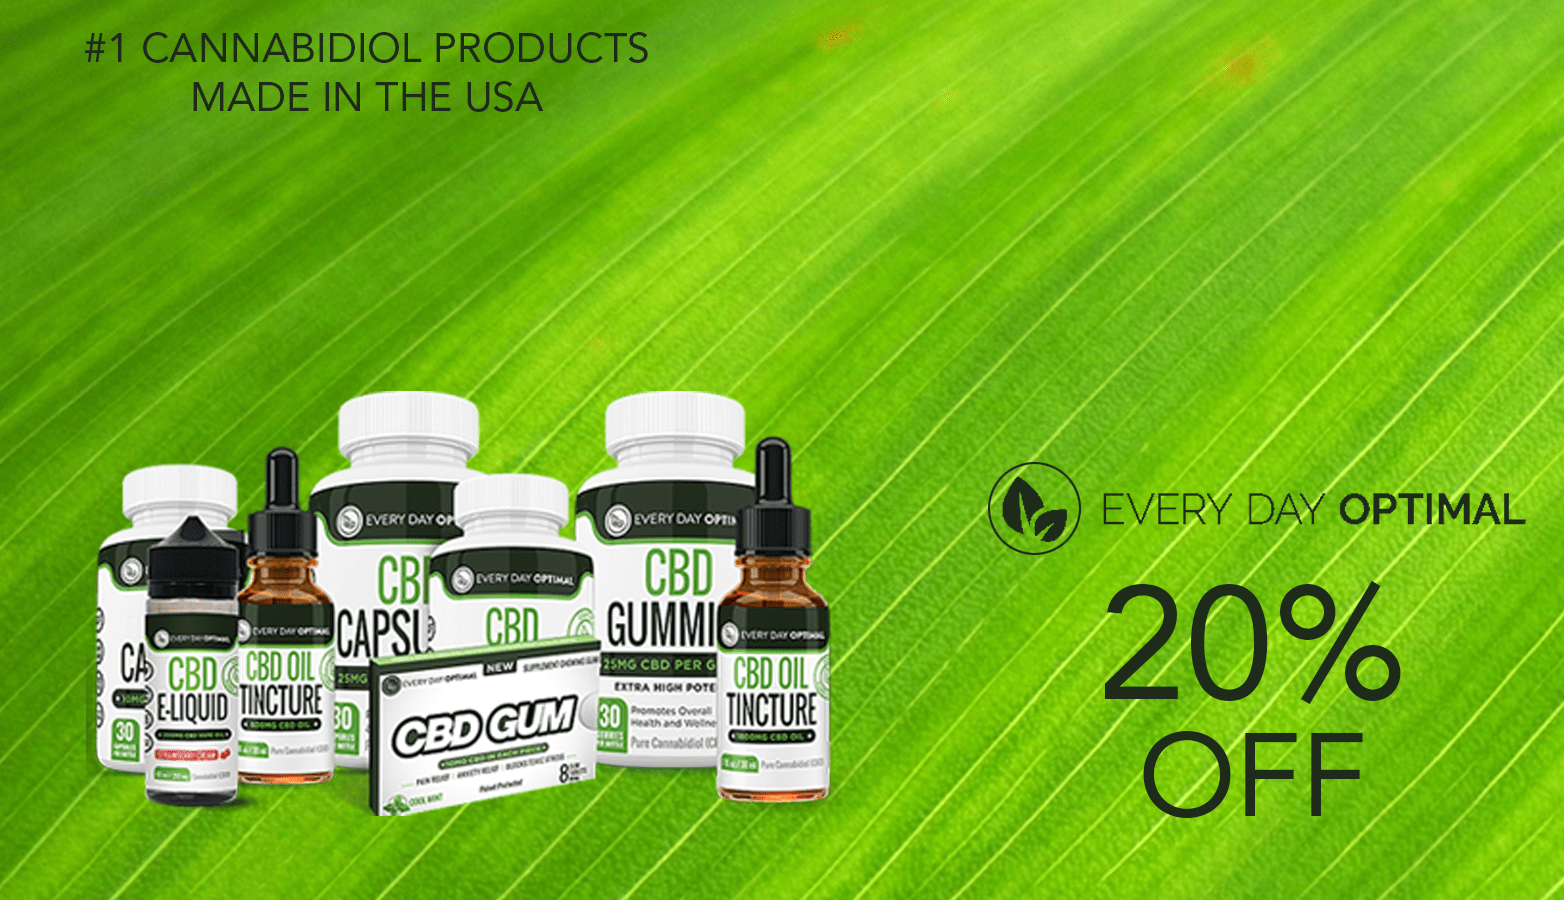 Everyday Optimal CBD Coupon Code Twenty Percent Off Website